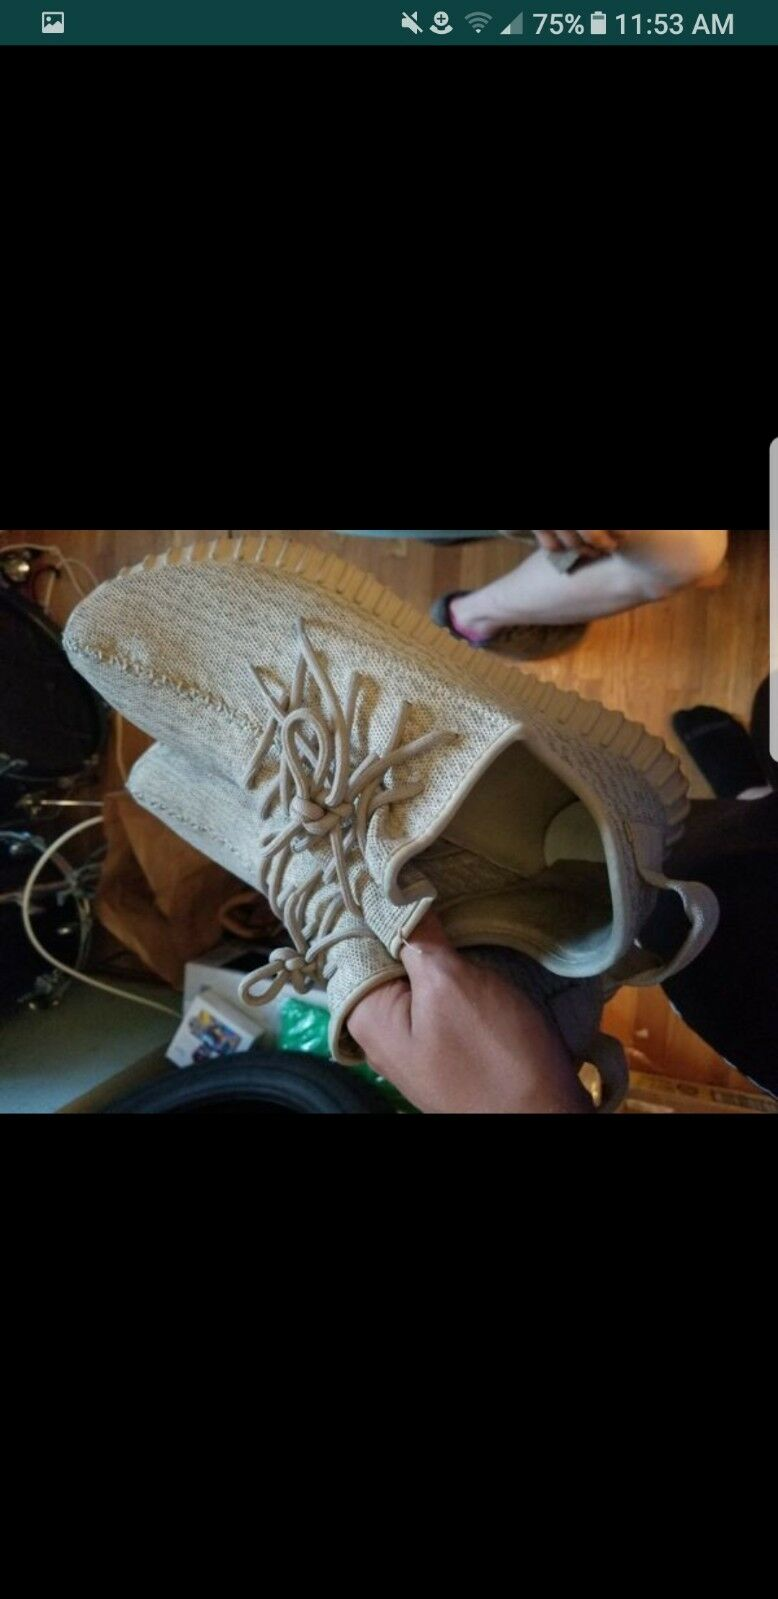 Authentic Yeezy Boost 350 Oxford Tans (V1)